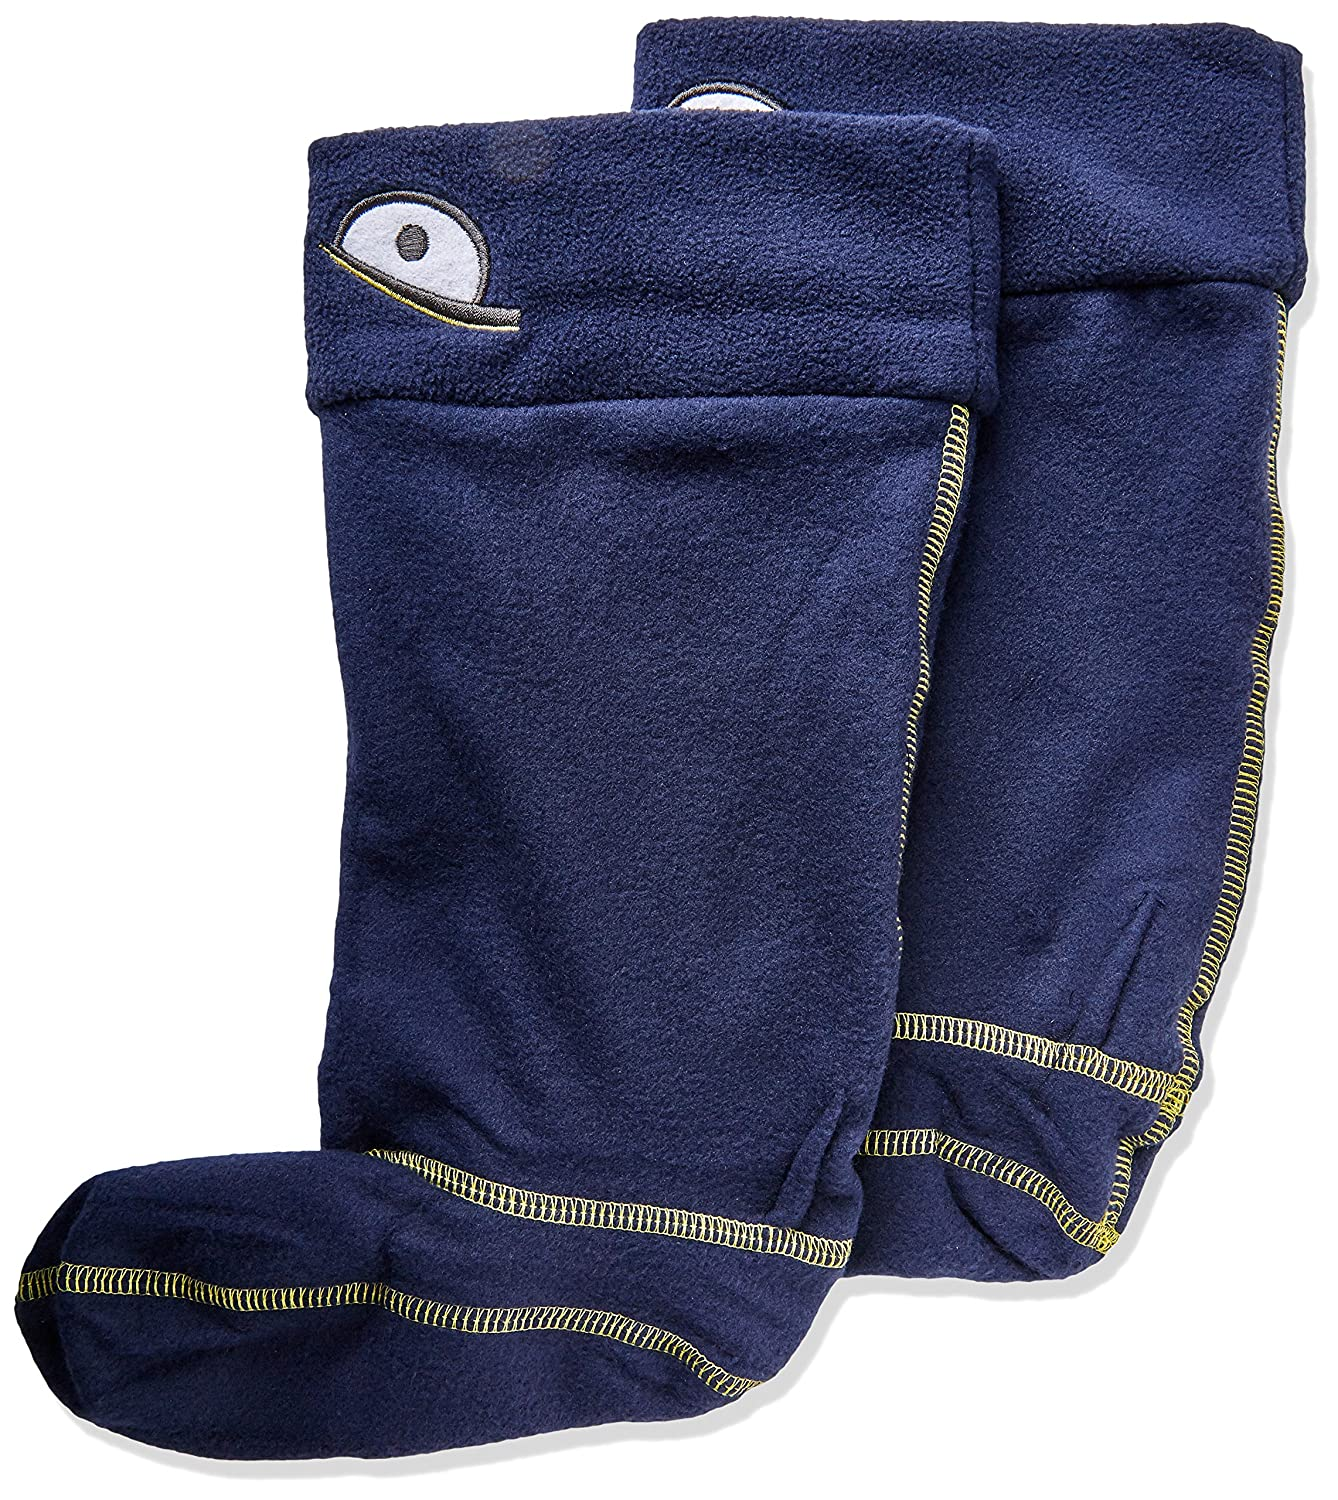 Joules Boy's Smile Socks Joules Boy' s Smile Socks